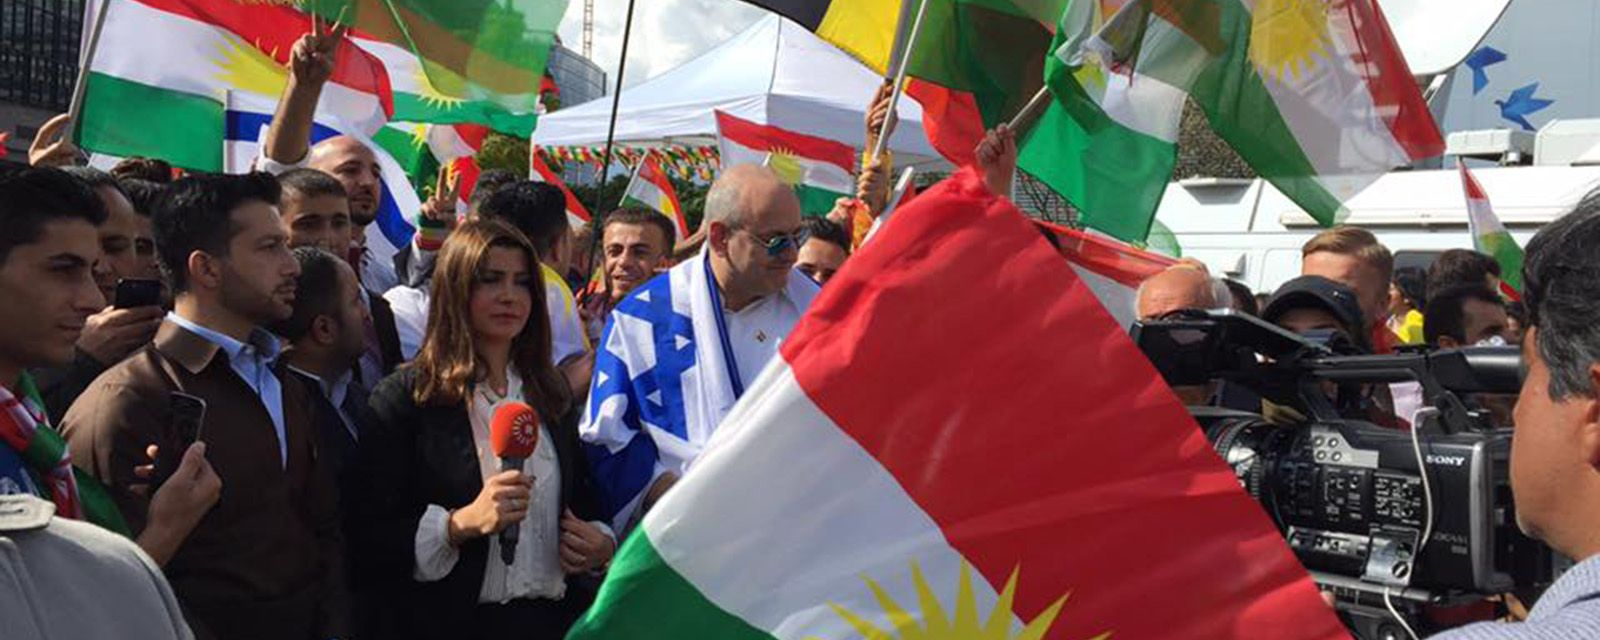 NEW JEWISH GROUP SUPPORTS INDEPENDENCE FOR KURDISTAN